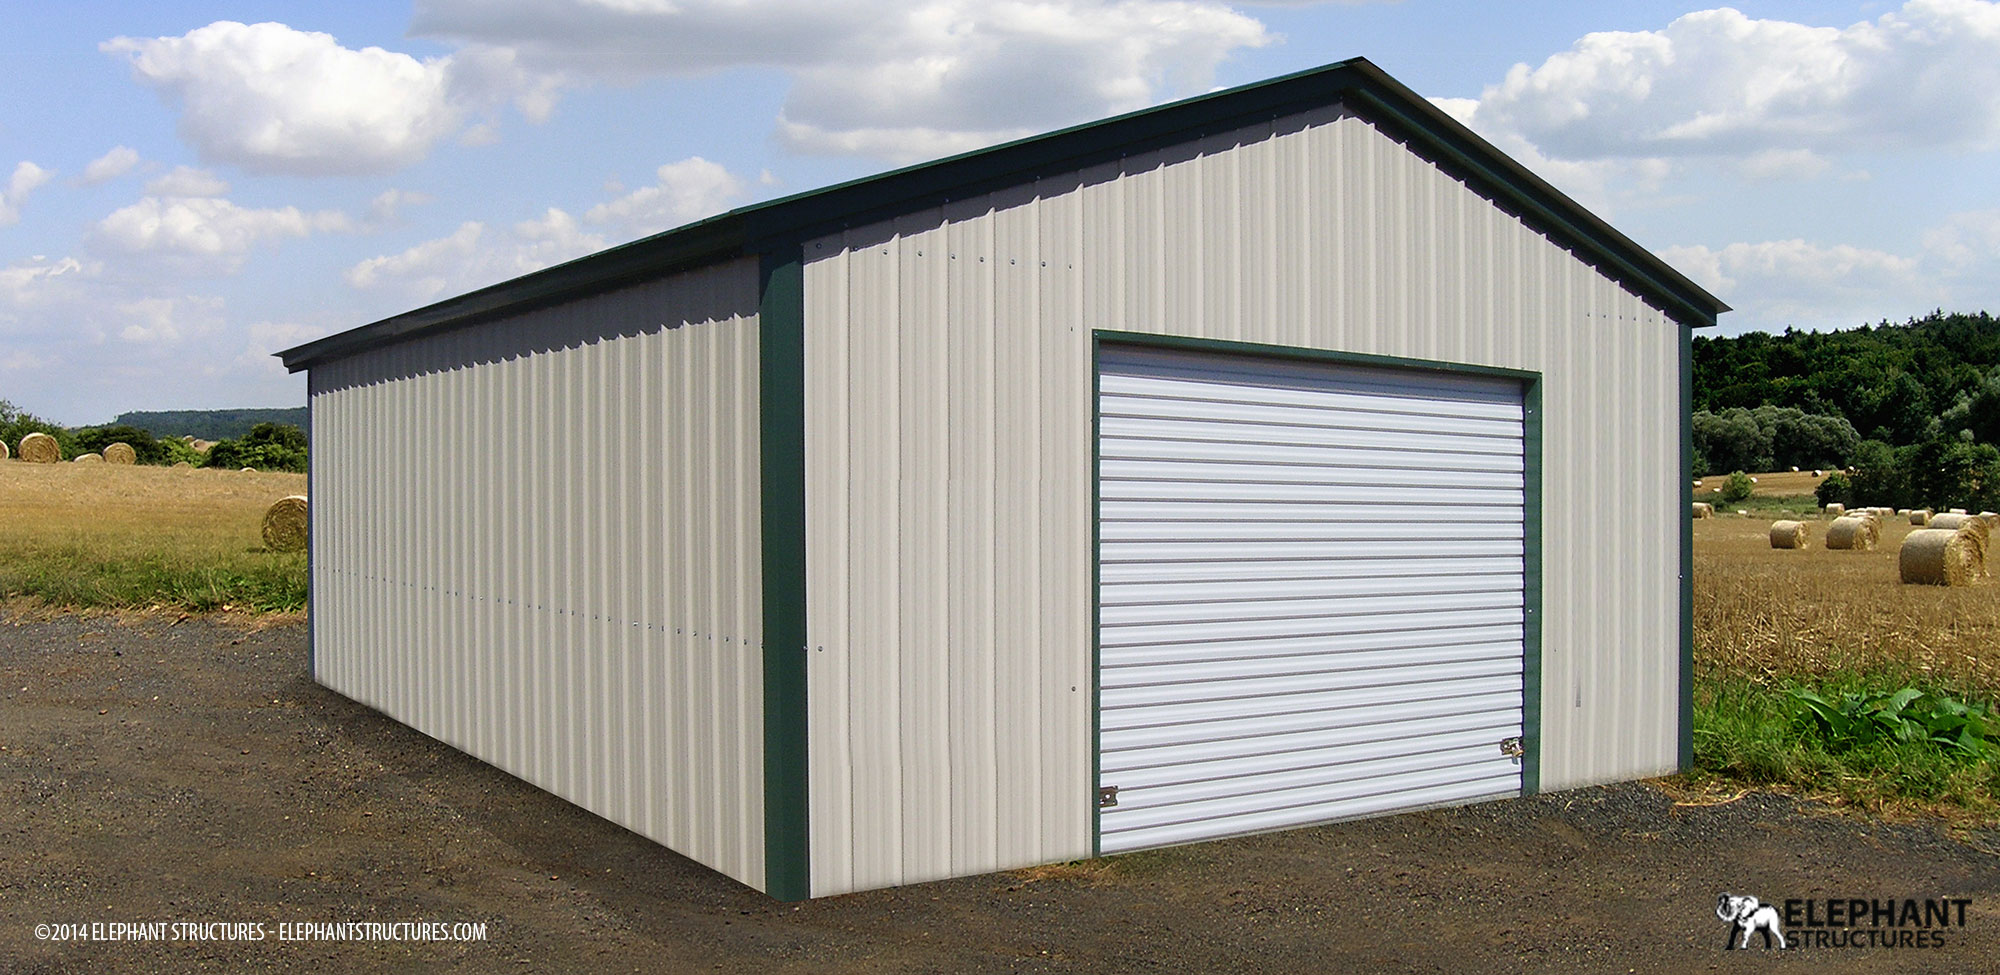 Metal Buildings Garages Carports Barns Elephant